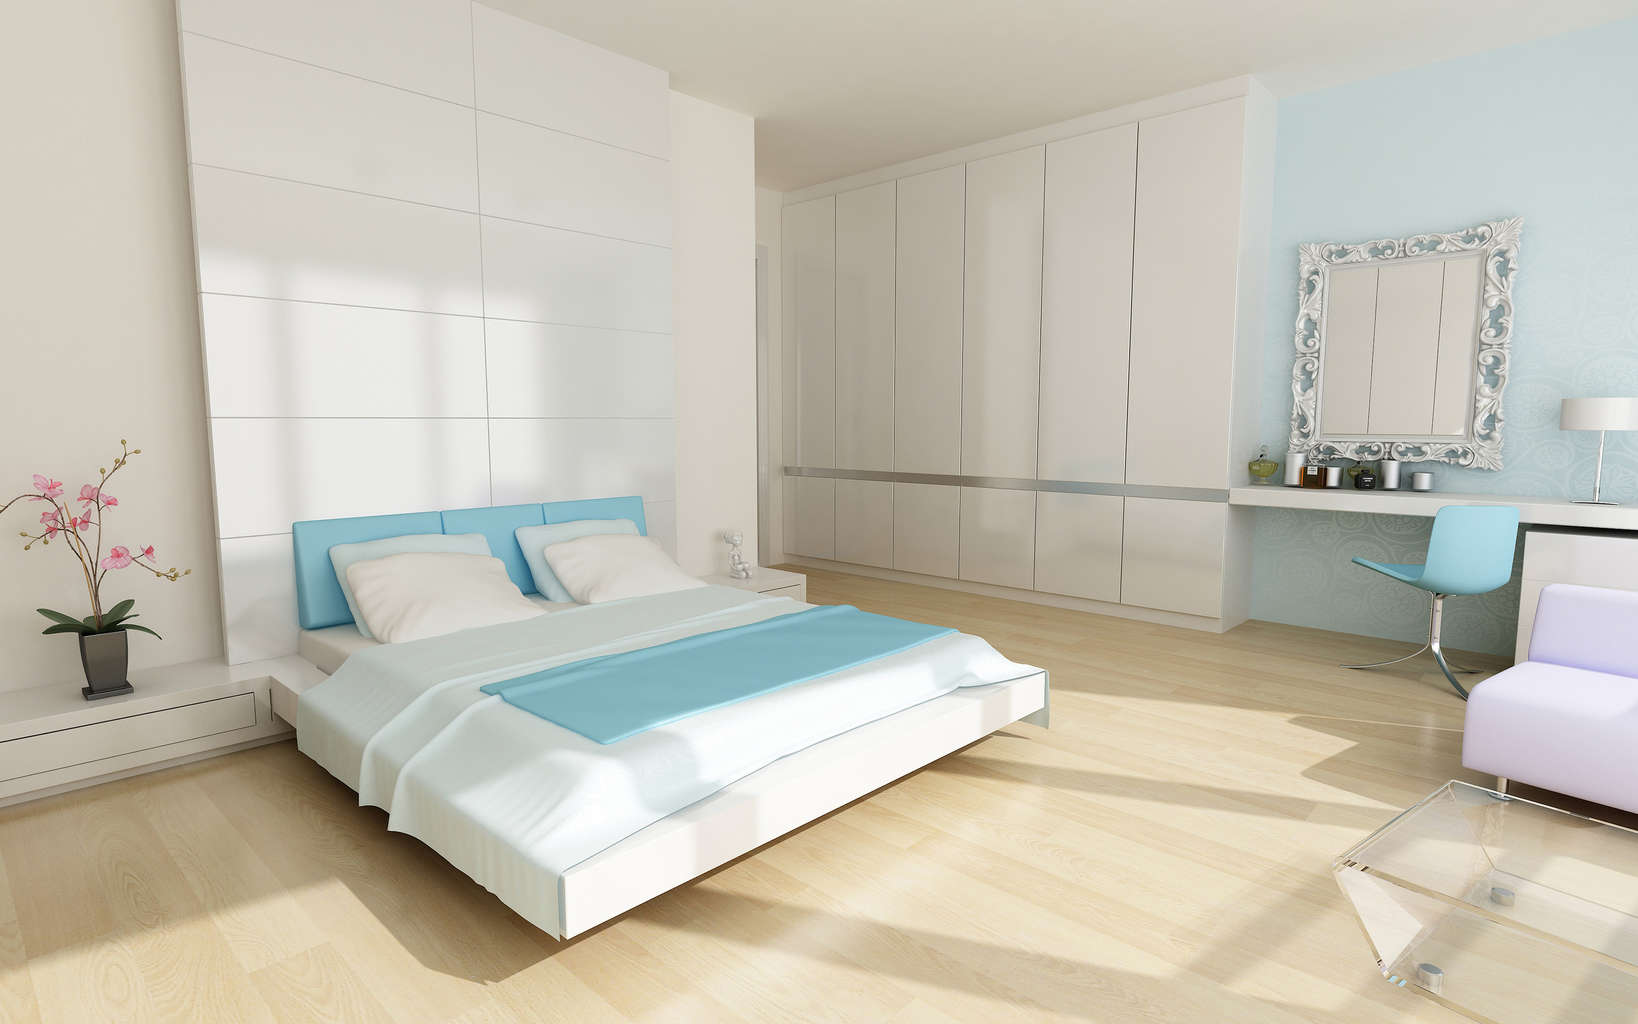 Flooring Options for Families and Kids… Vinyl or Hardwood?